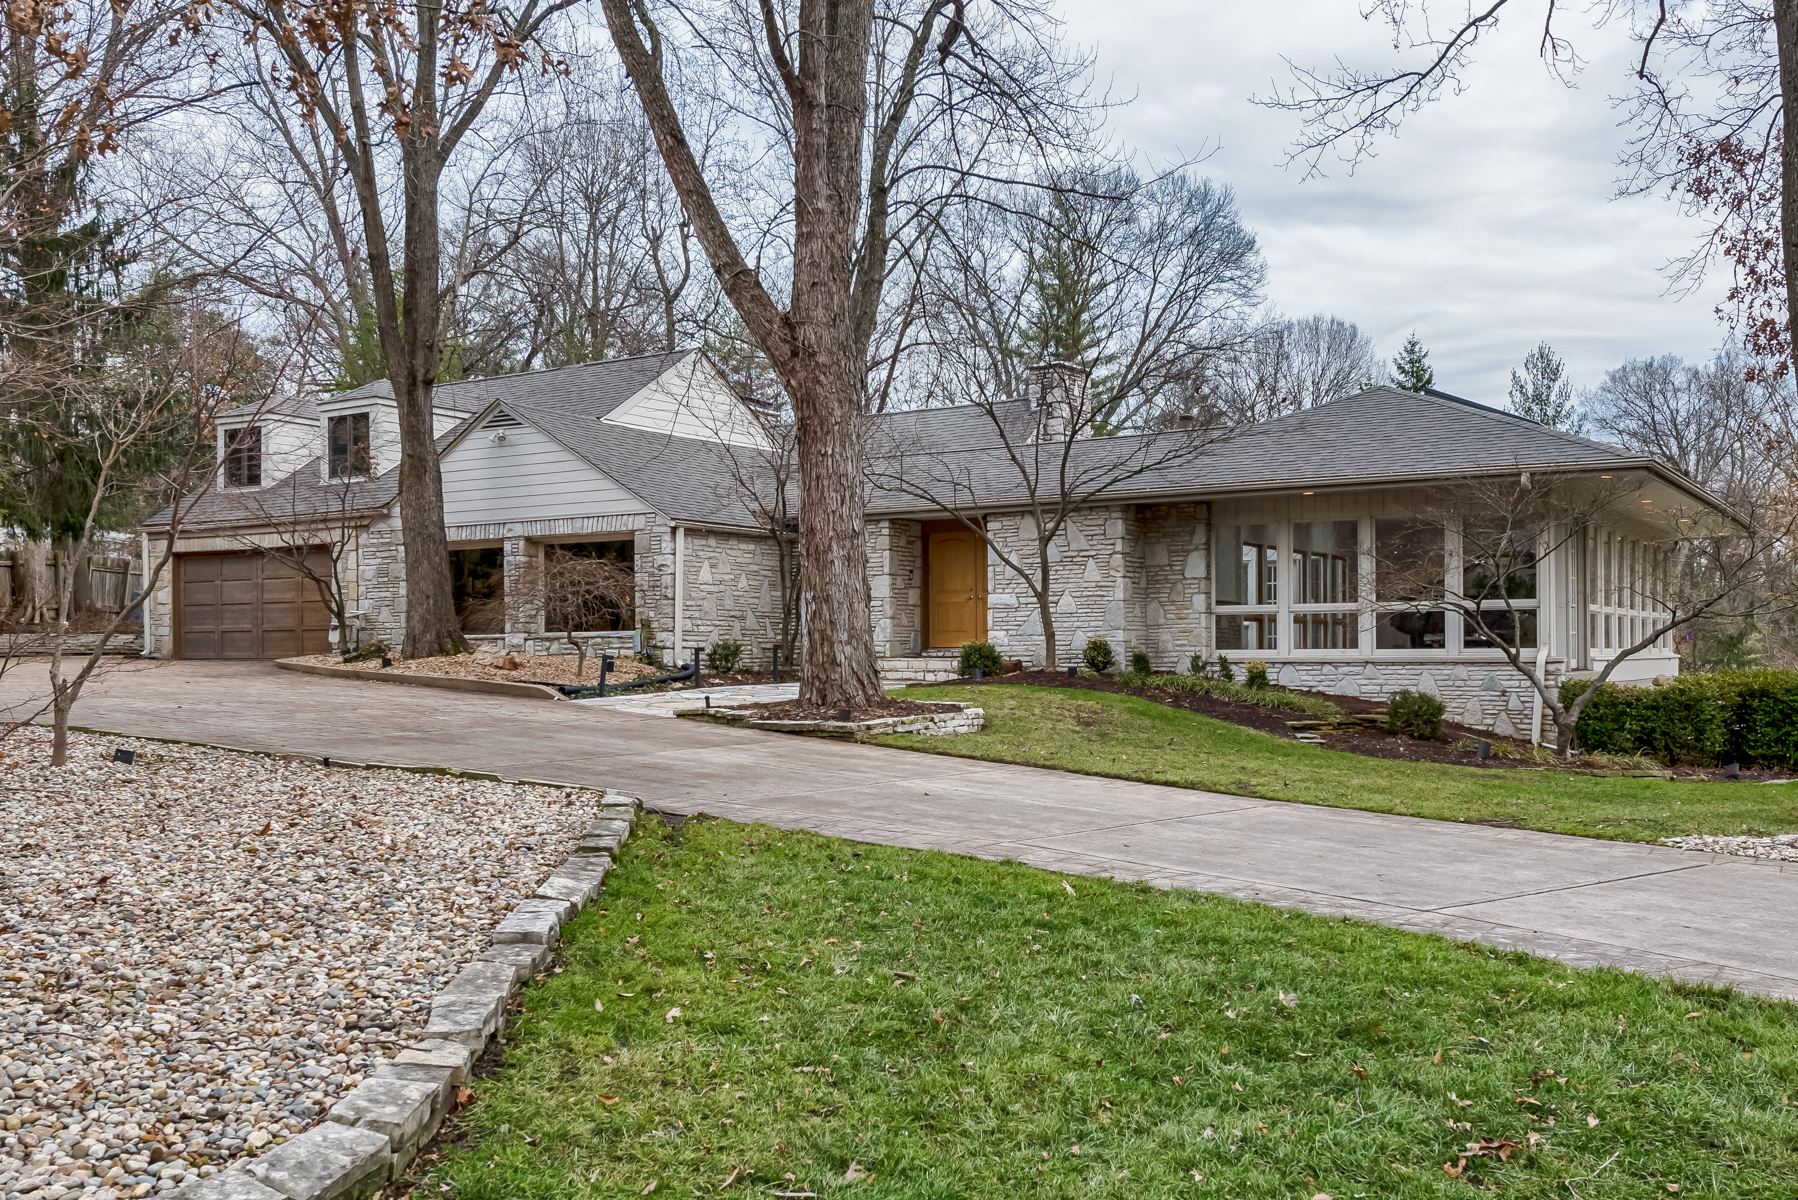 Single Family Home for Sale at Dielman Road 110 Dielman Road Ladue, Missouri 63124 United States